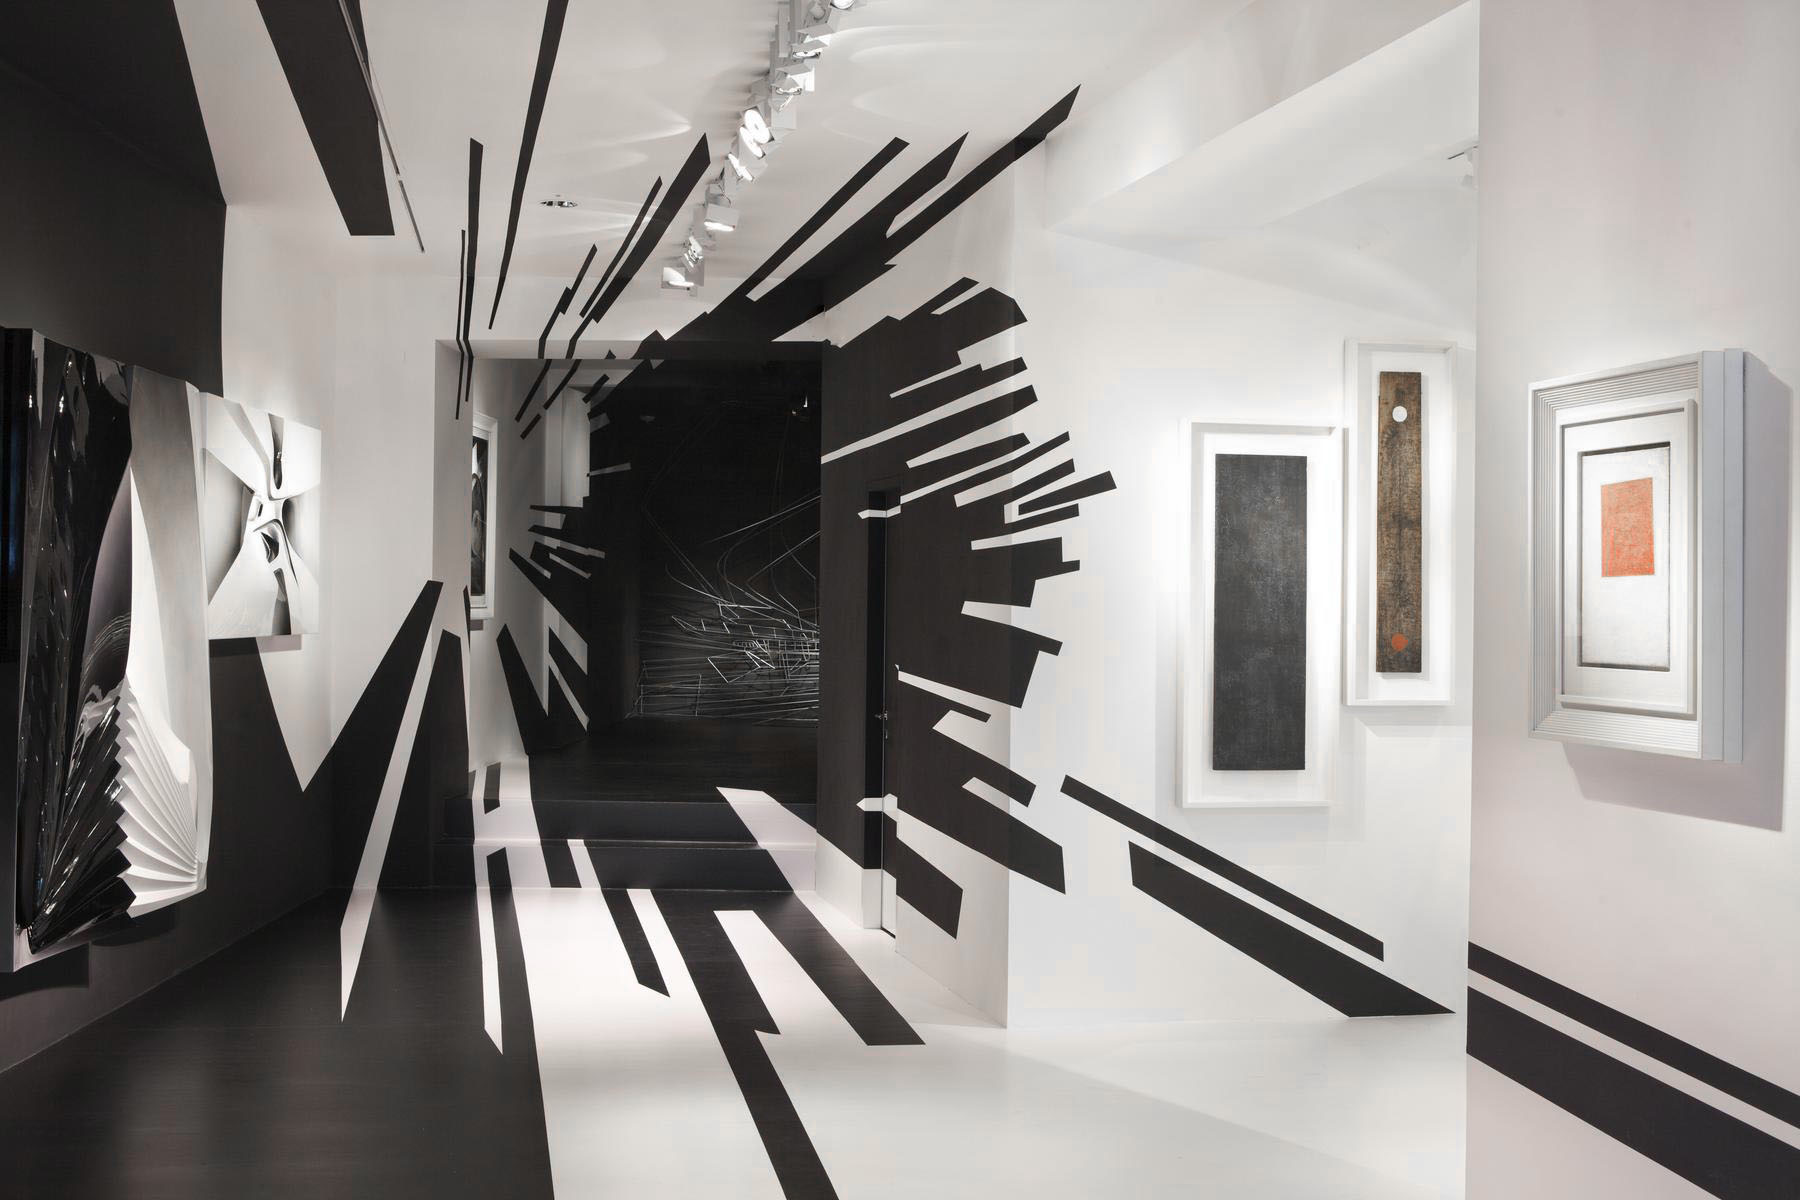 Zaha Hadid and Suprematism Exhibition   Courtesy of Galerie Gmurzynska